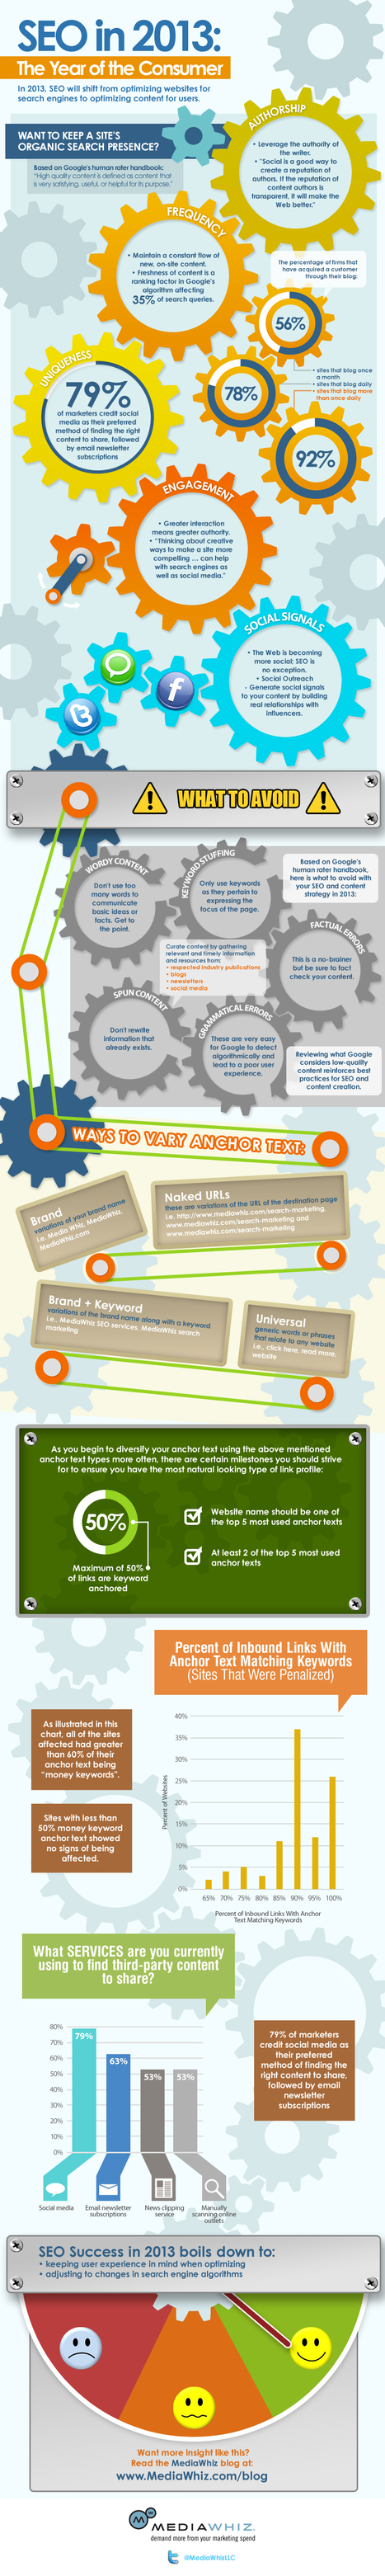 SEO in 2013 : The year of the consumer | Social Media 3.0 | Scoop.it